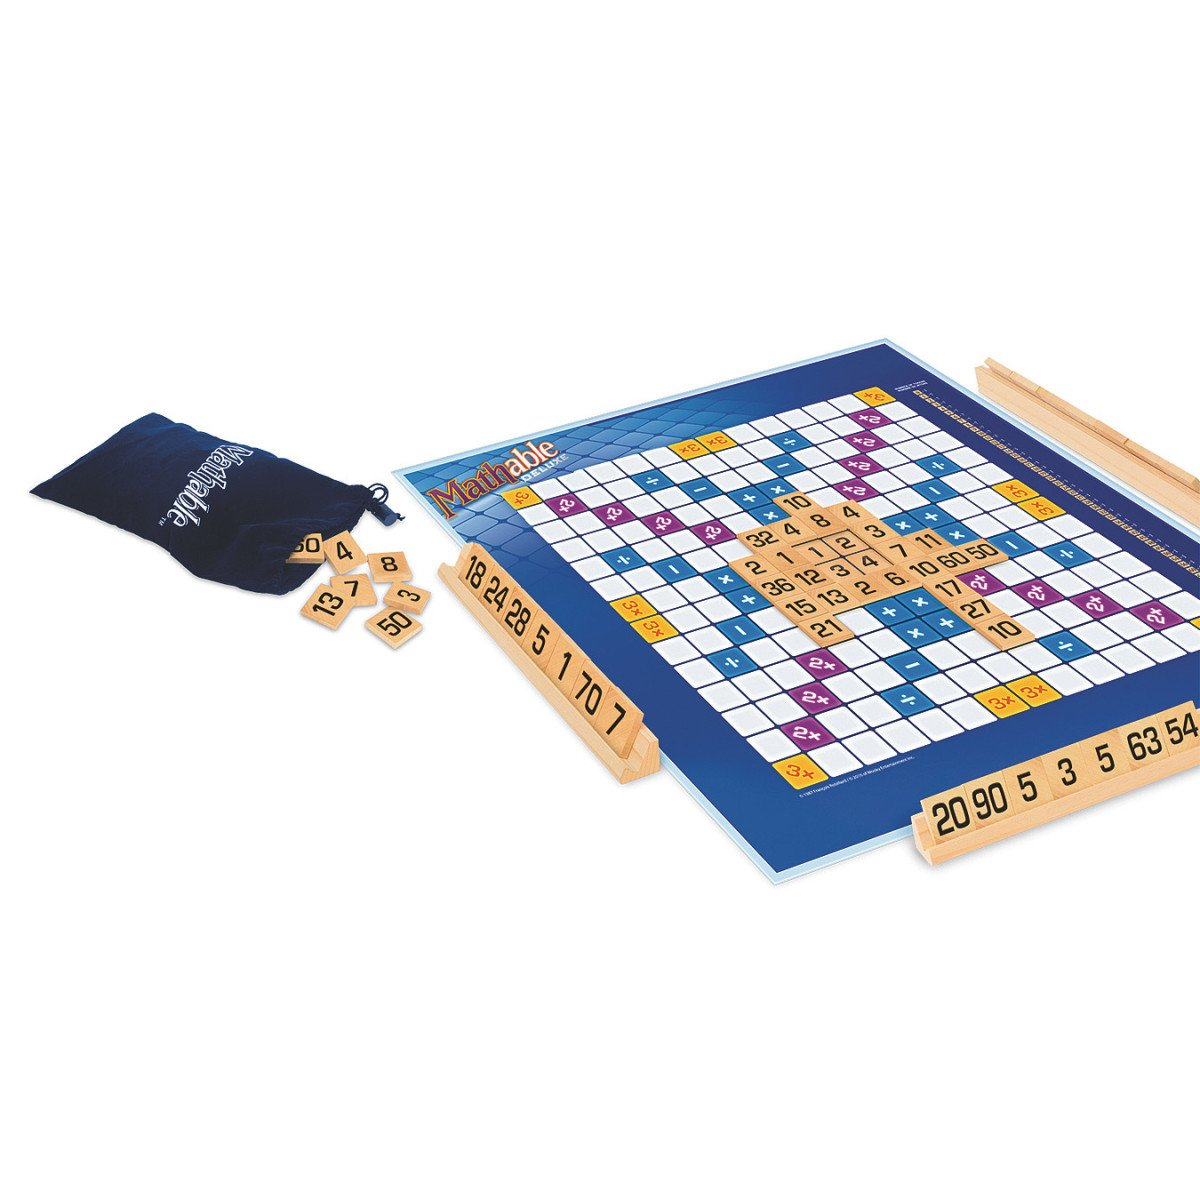 Mathable Deluxe Holz Edition (5001)